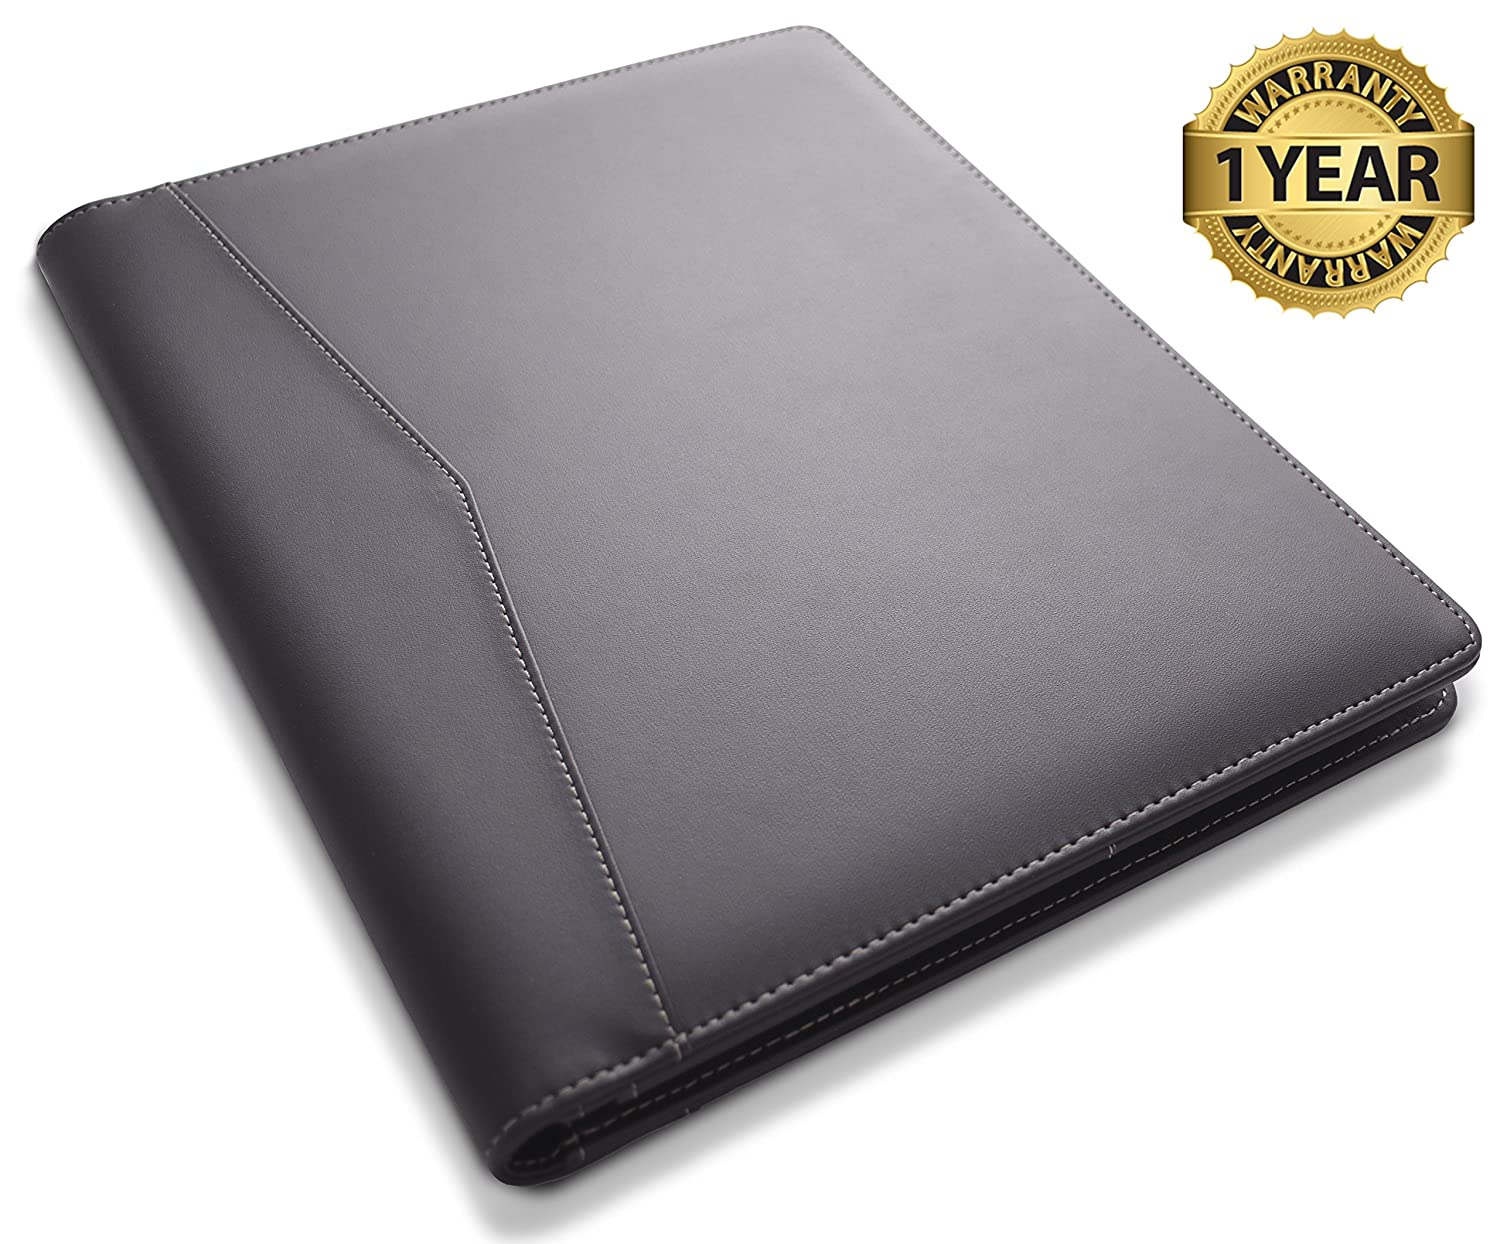 Amazon.com : STYLIO Padfolio/ Resume Portfolio Folder - Interview/ Legal  Document Organizer & Business Card Holder - With Letter-Sized Writing Pad  ...